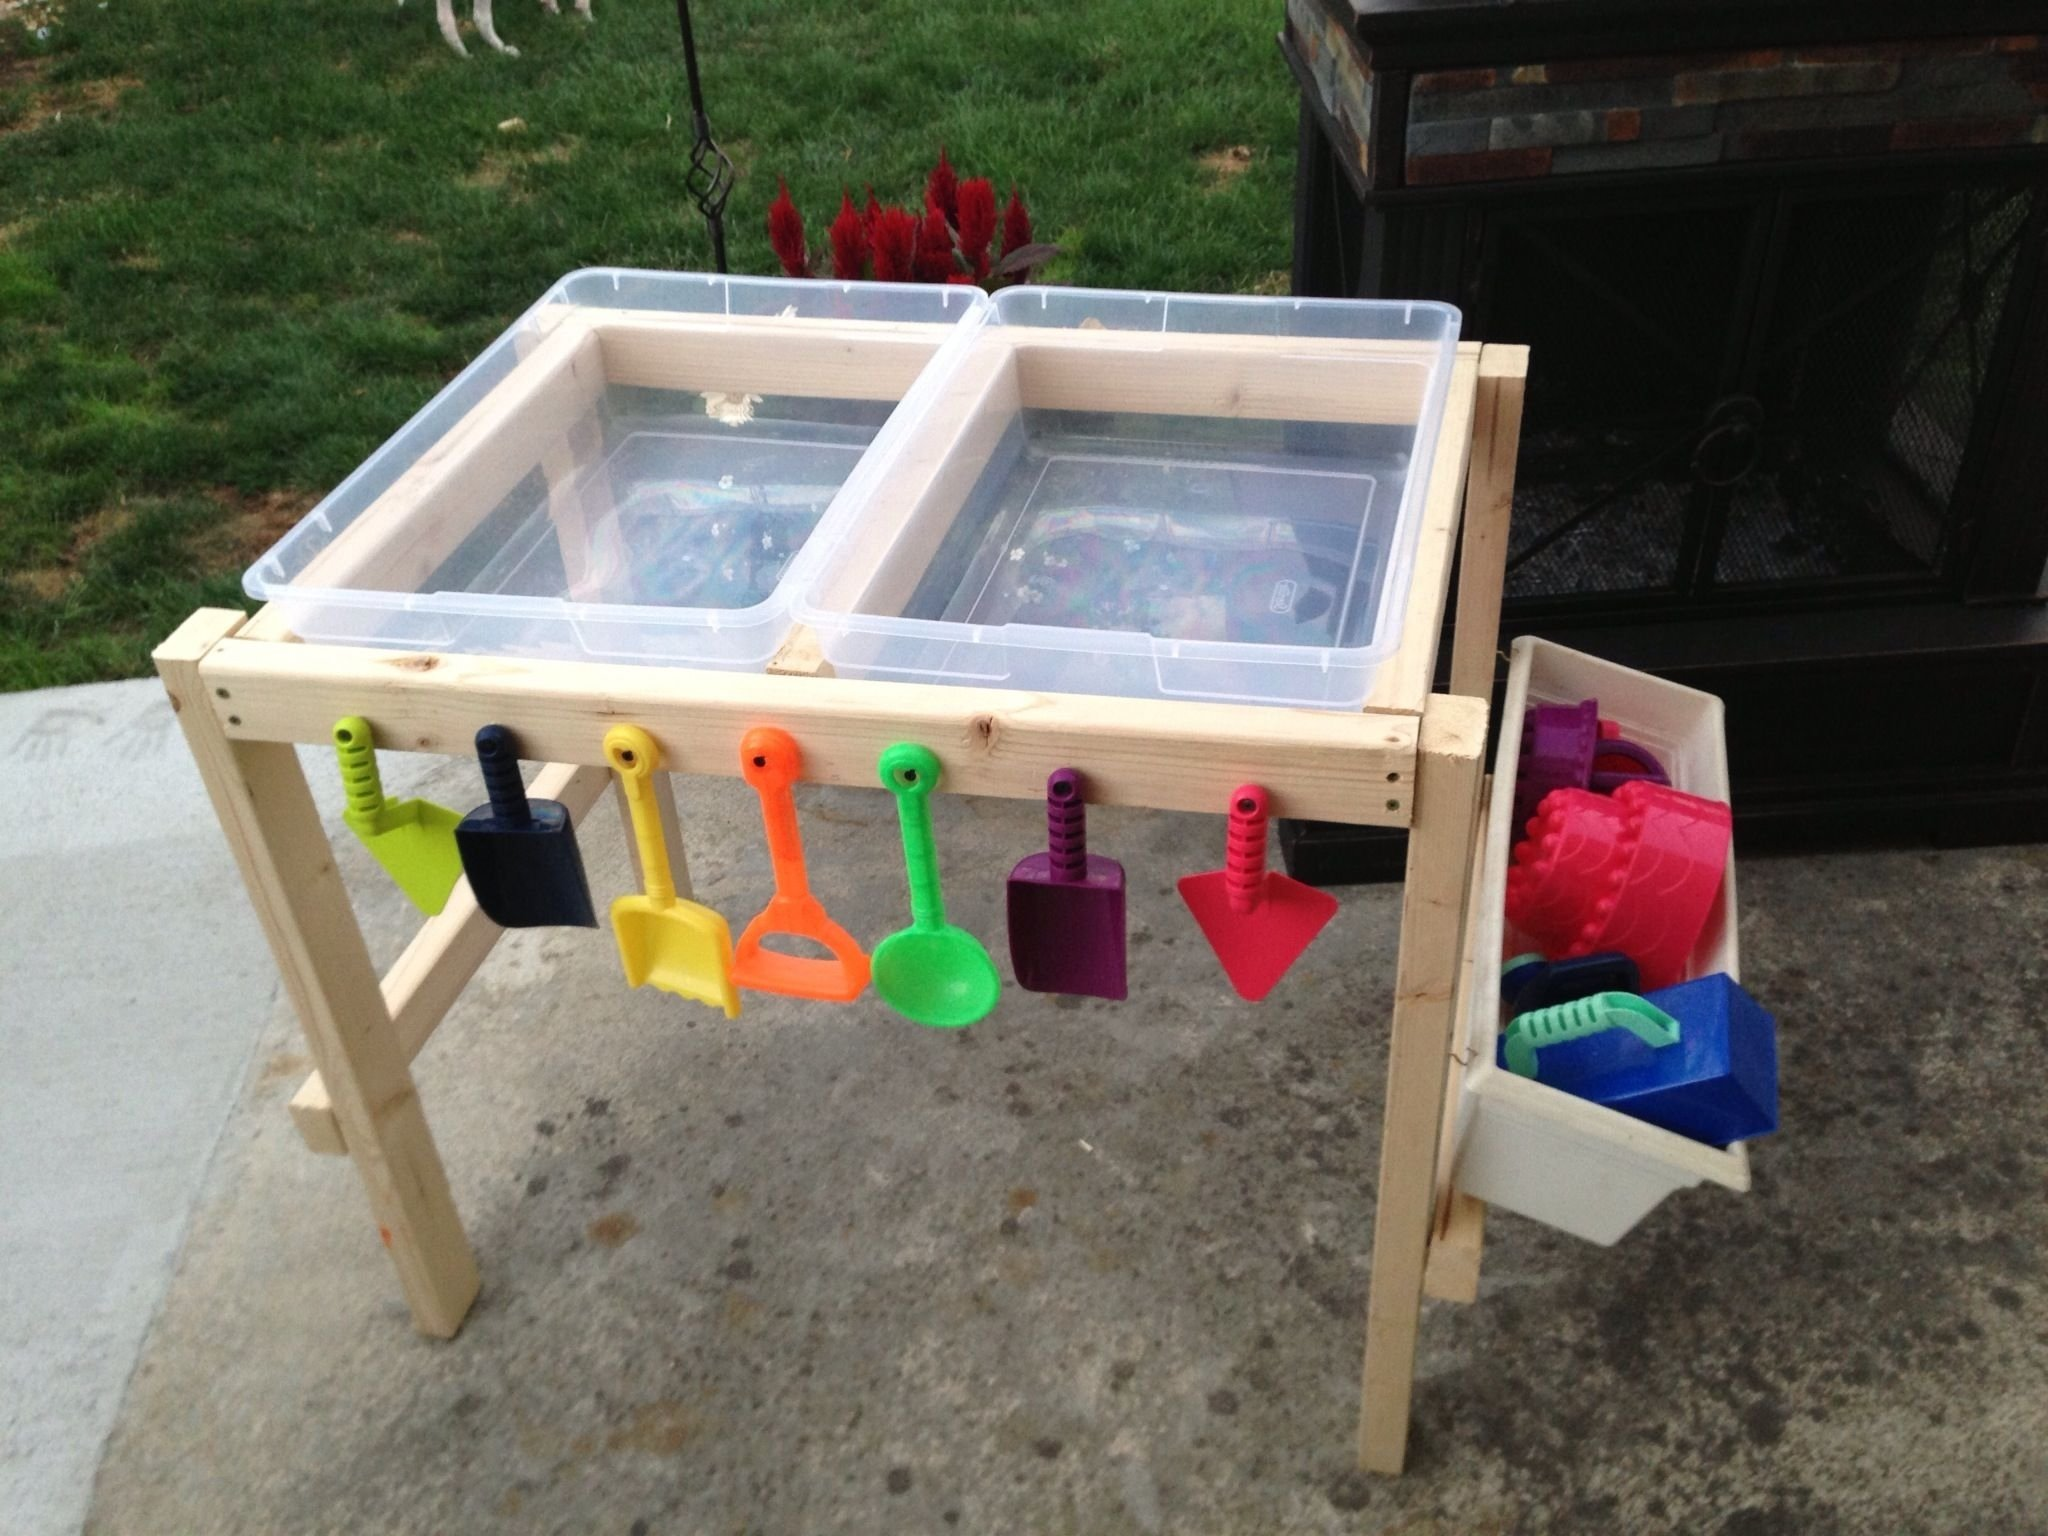 10 Lovely Sand And Water Table Ideas water and sand table madenana with love jasper fun pinterest 2020